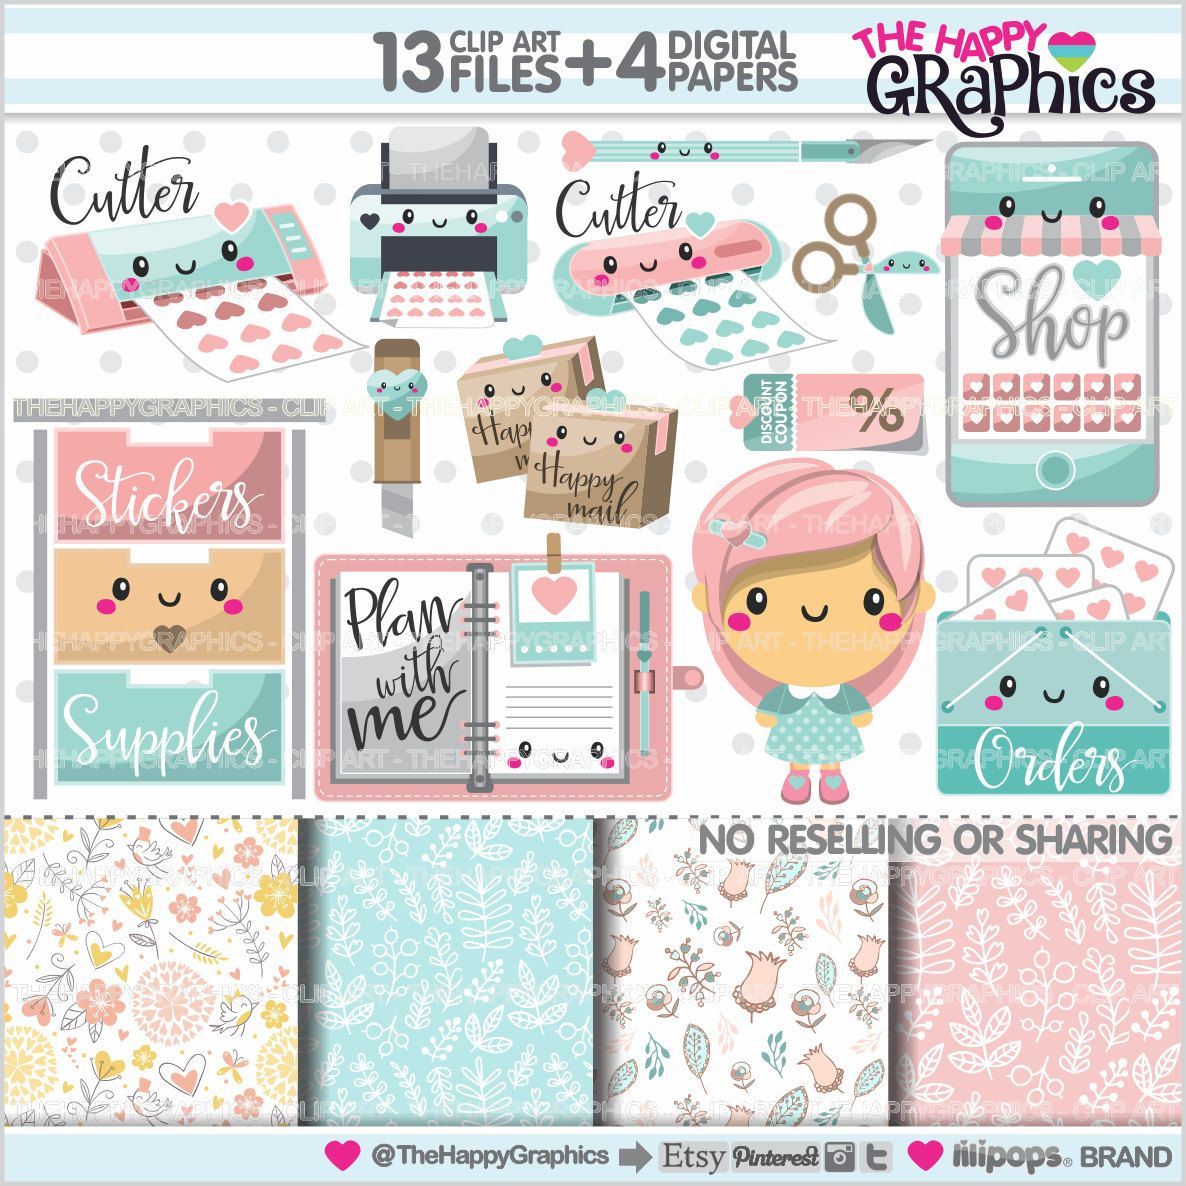 Planner clipart life plan. Graphic commercial use